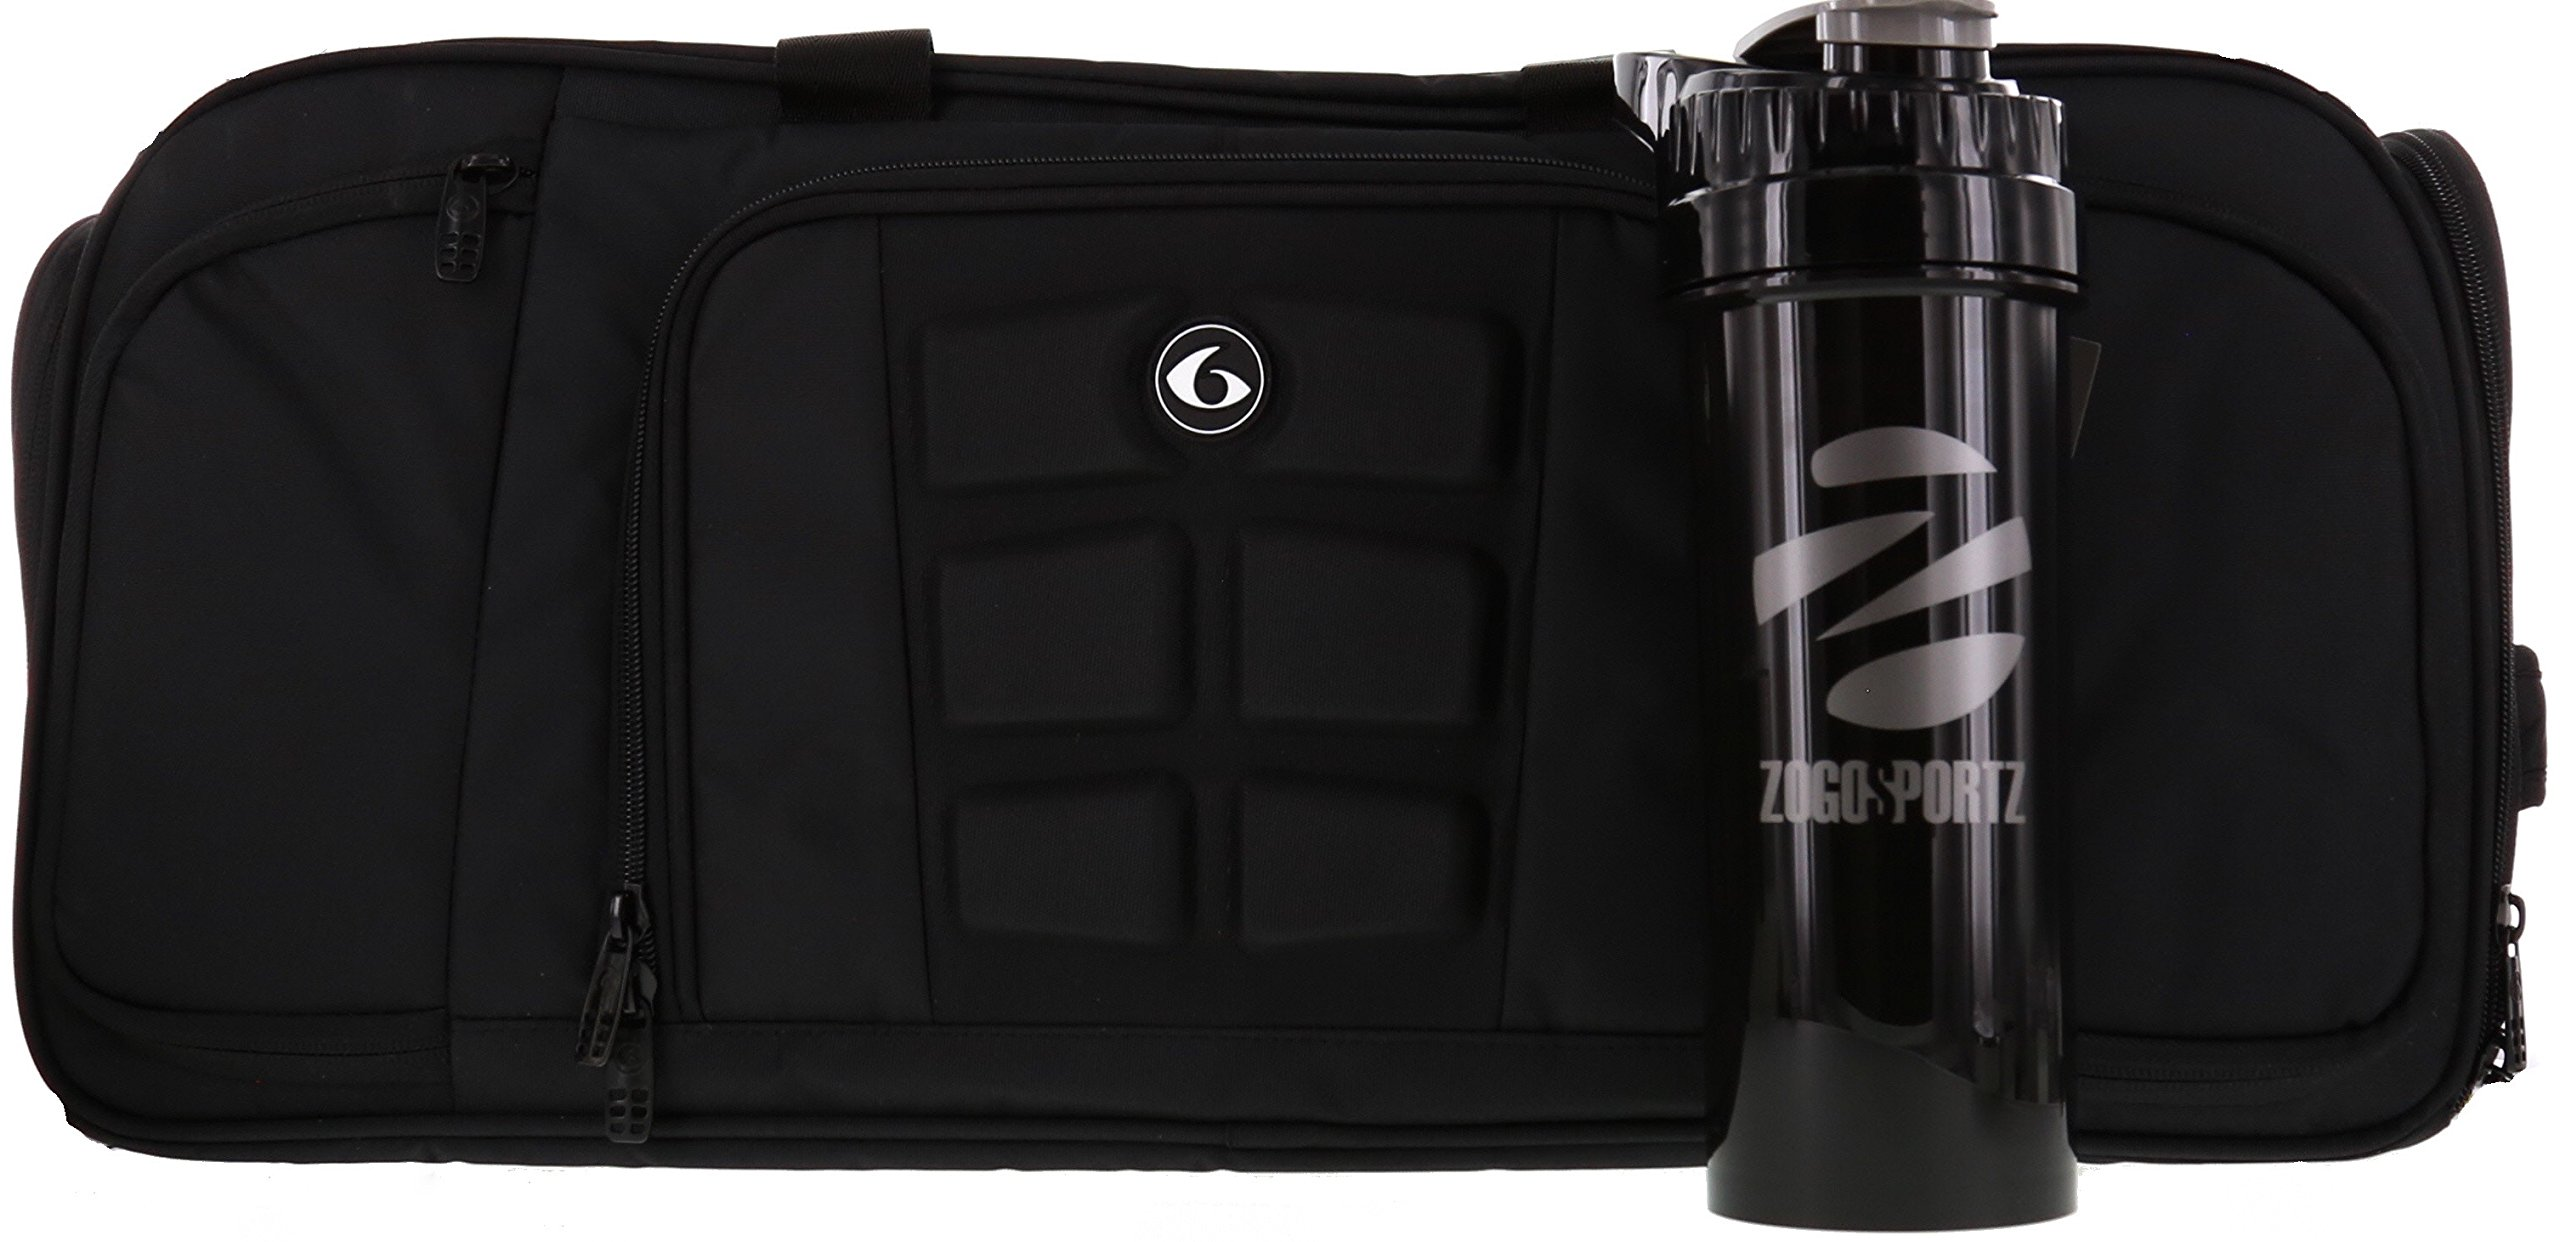 6 Pack Fitness Expert Beast Duffle 500 Stealth Black w/Removable Core w/ Bonus ZogoSportz Cyclone Shaker by 6 Pack Fitness